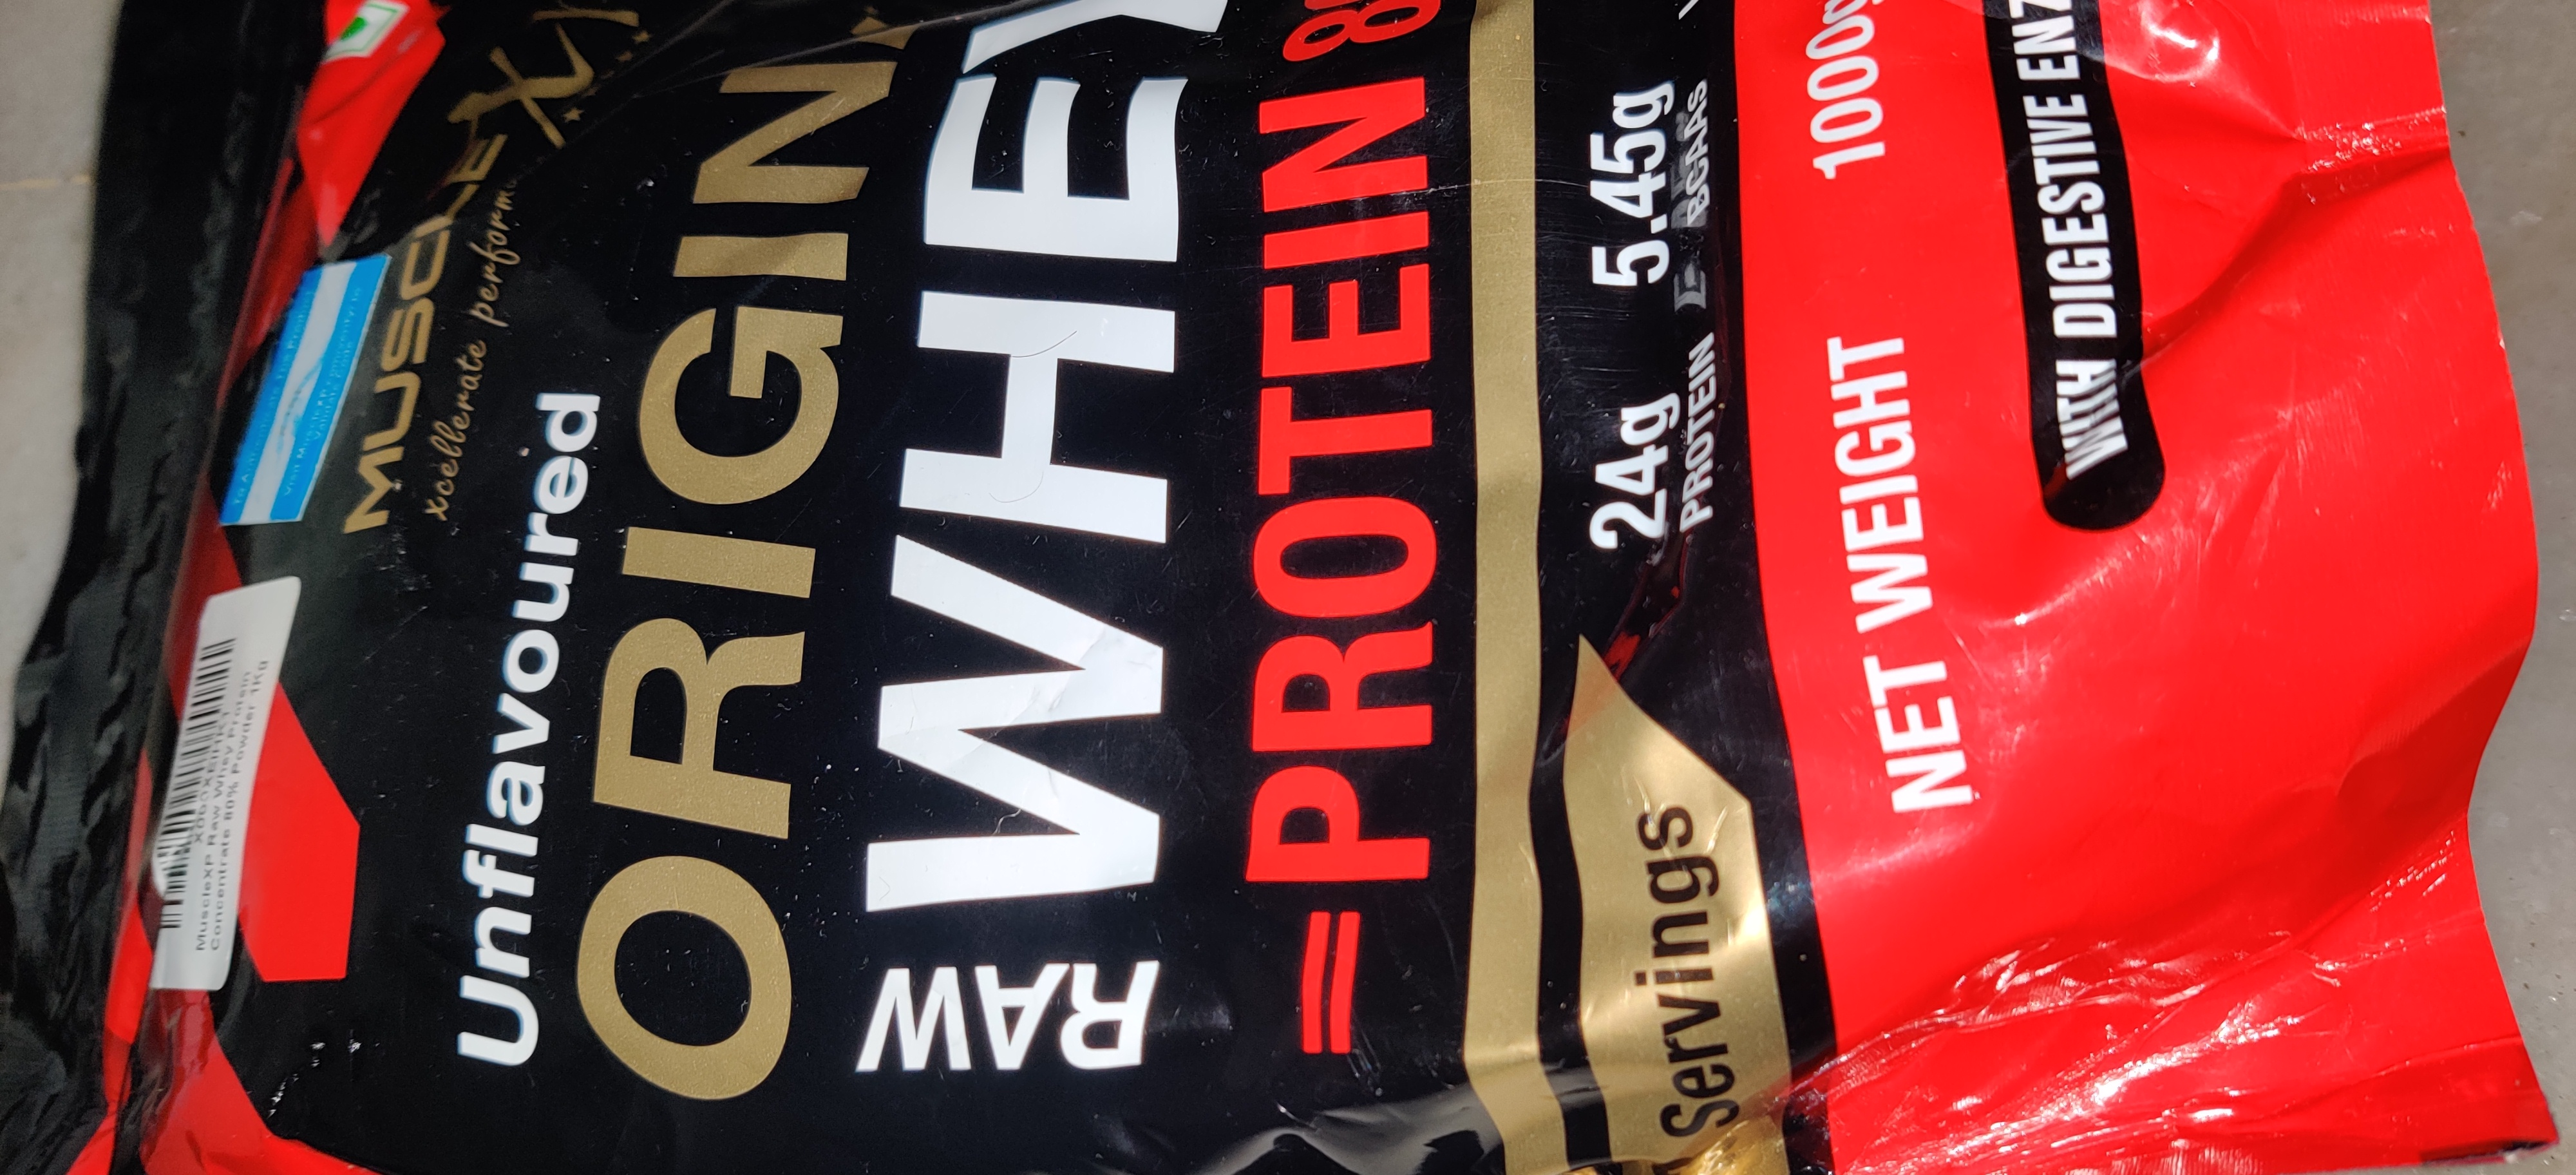 MuscleXP Raw Whey Protein 80% Powder Unflavoured -Good product-By radhima_puri